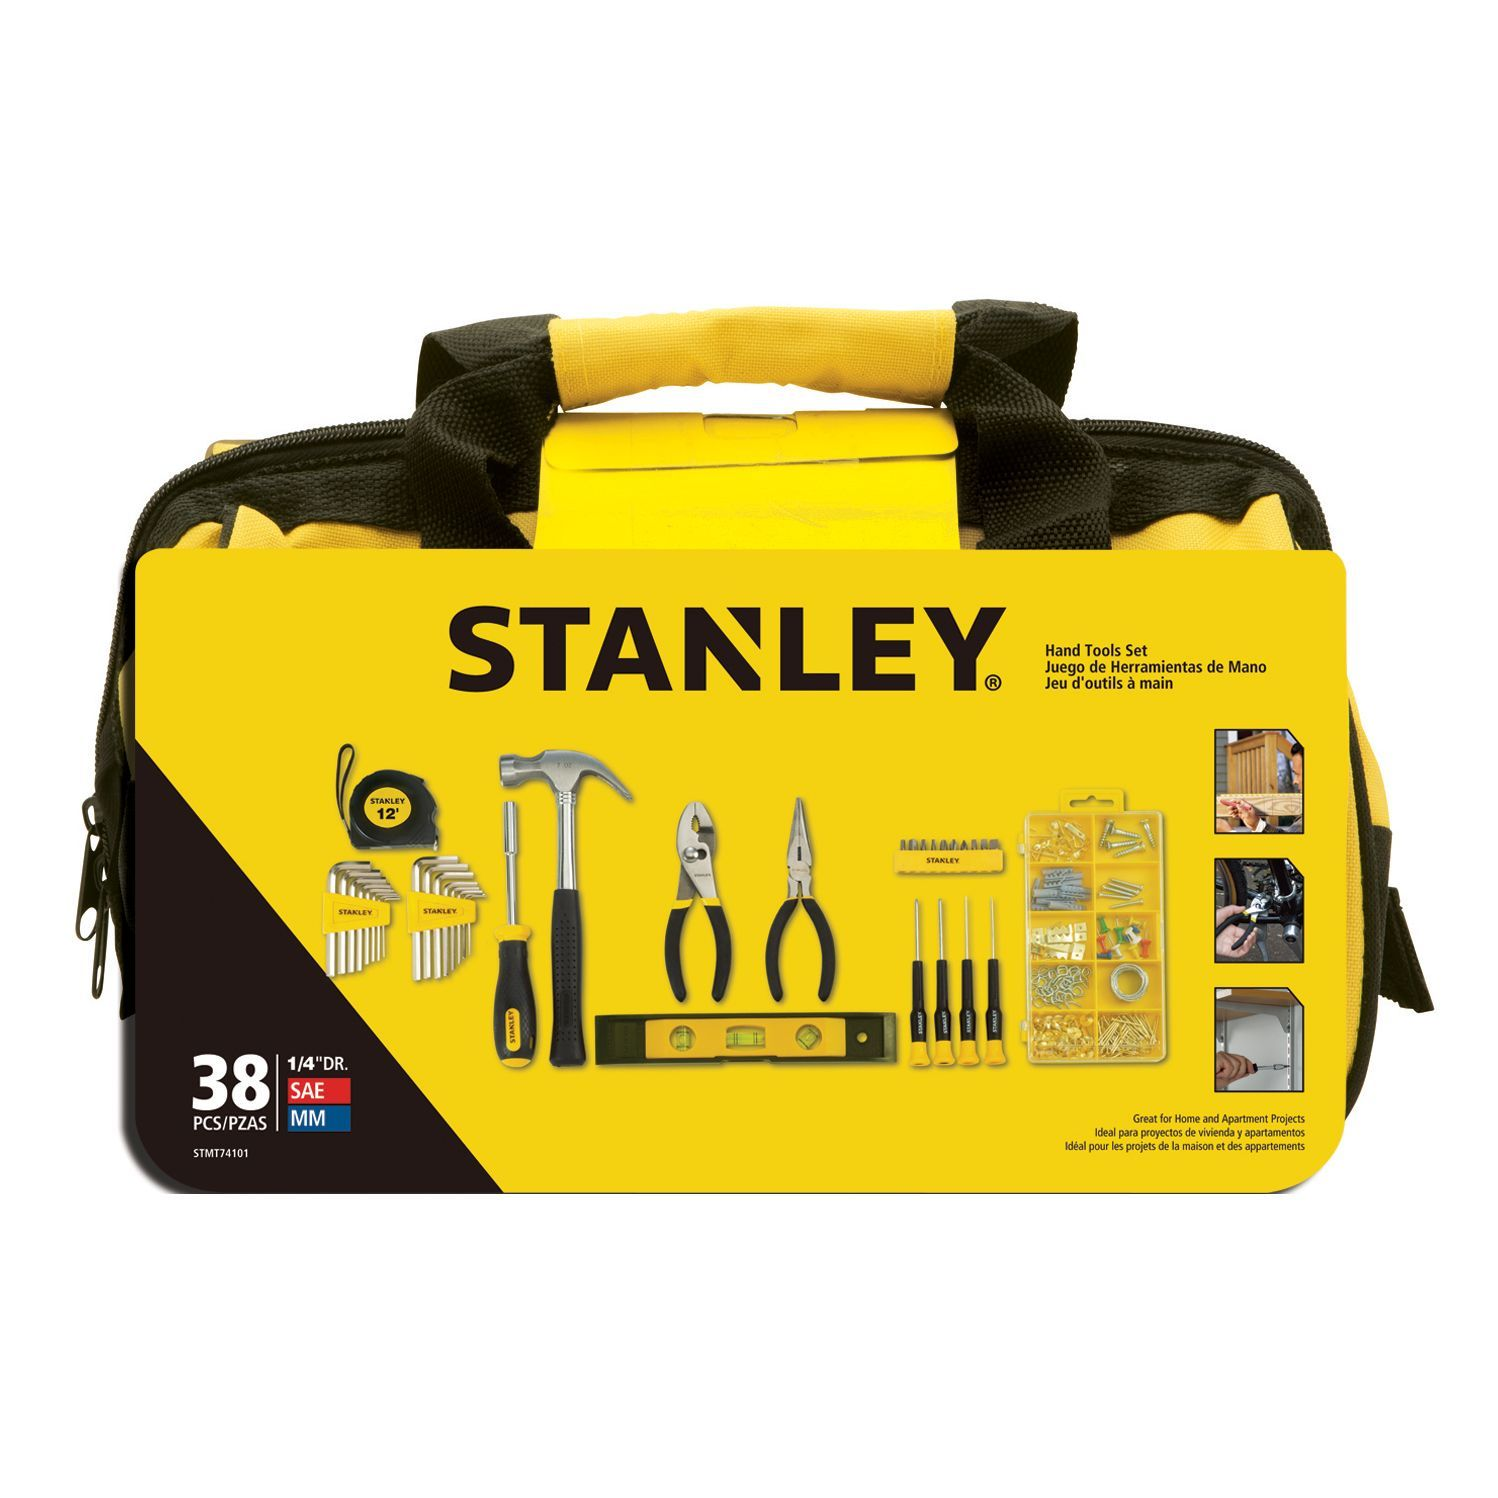 Stanley Light Duty Tool Kit, 38 Pieces | Departments | DIY ...